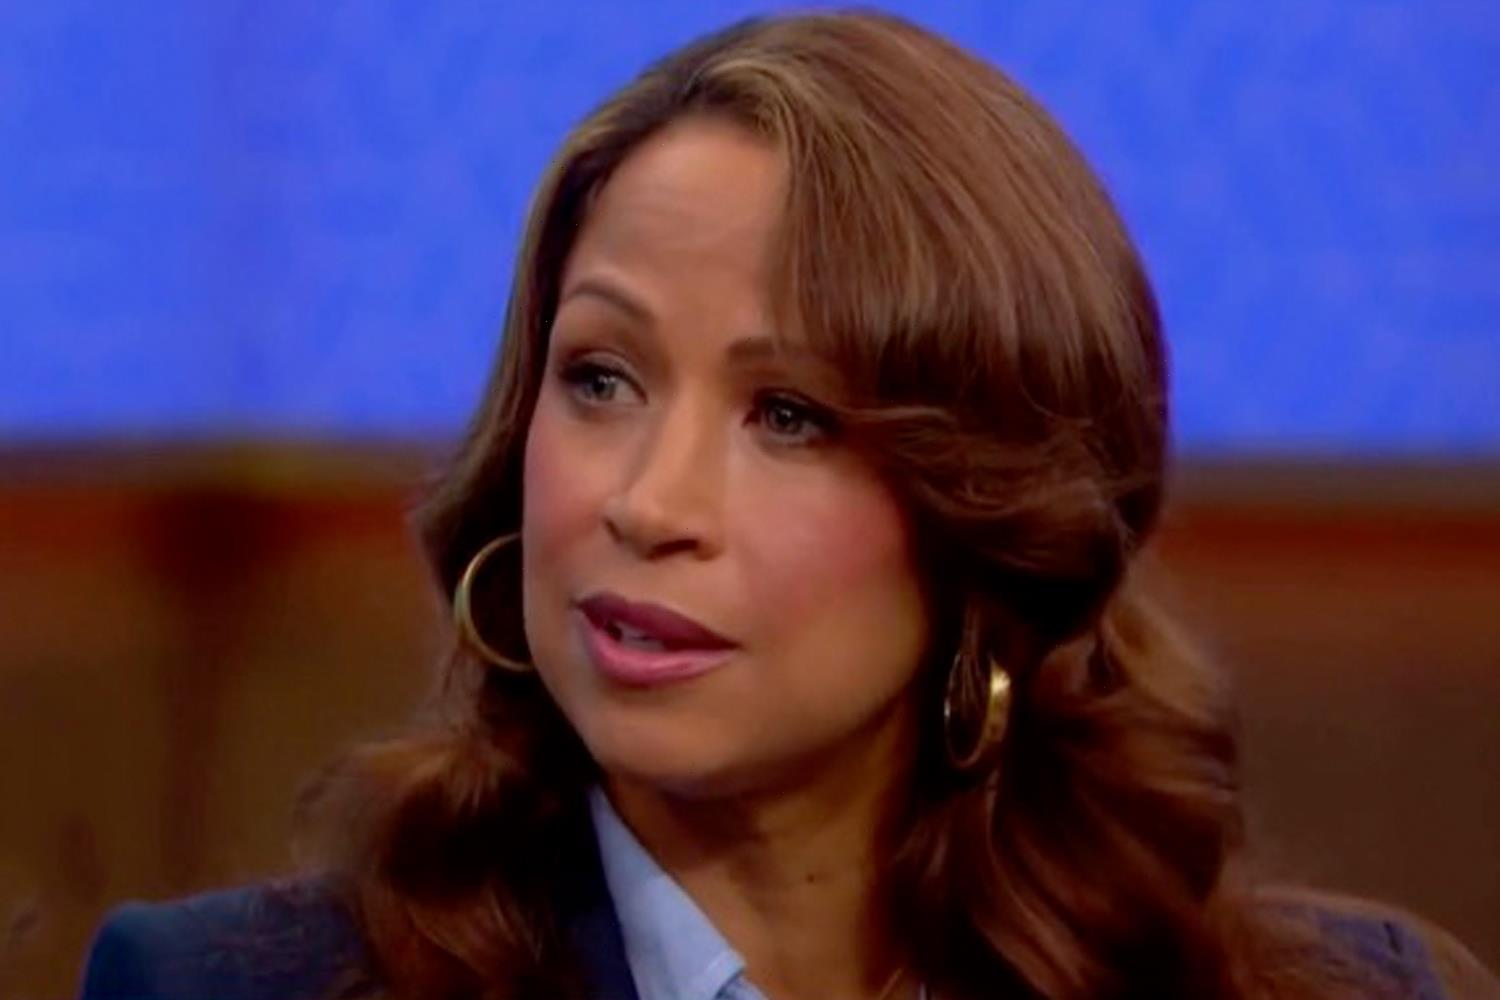 Clueless star Stacey Dash admits she took '18 to 20 pills a day & tried to kill herself at 17' during addiction battle